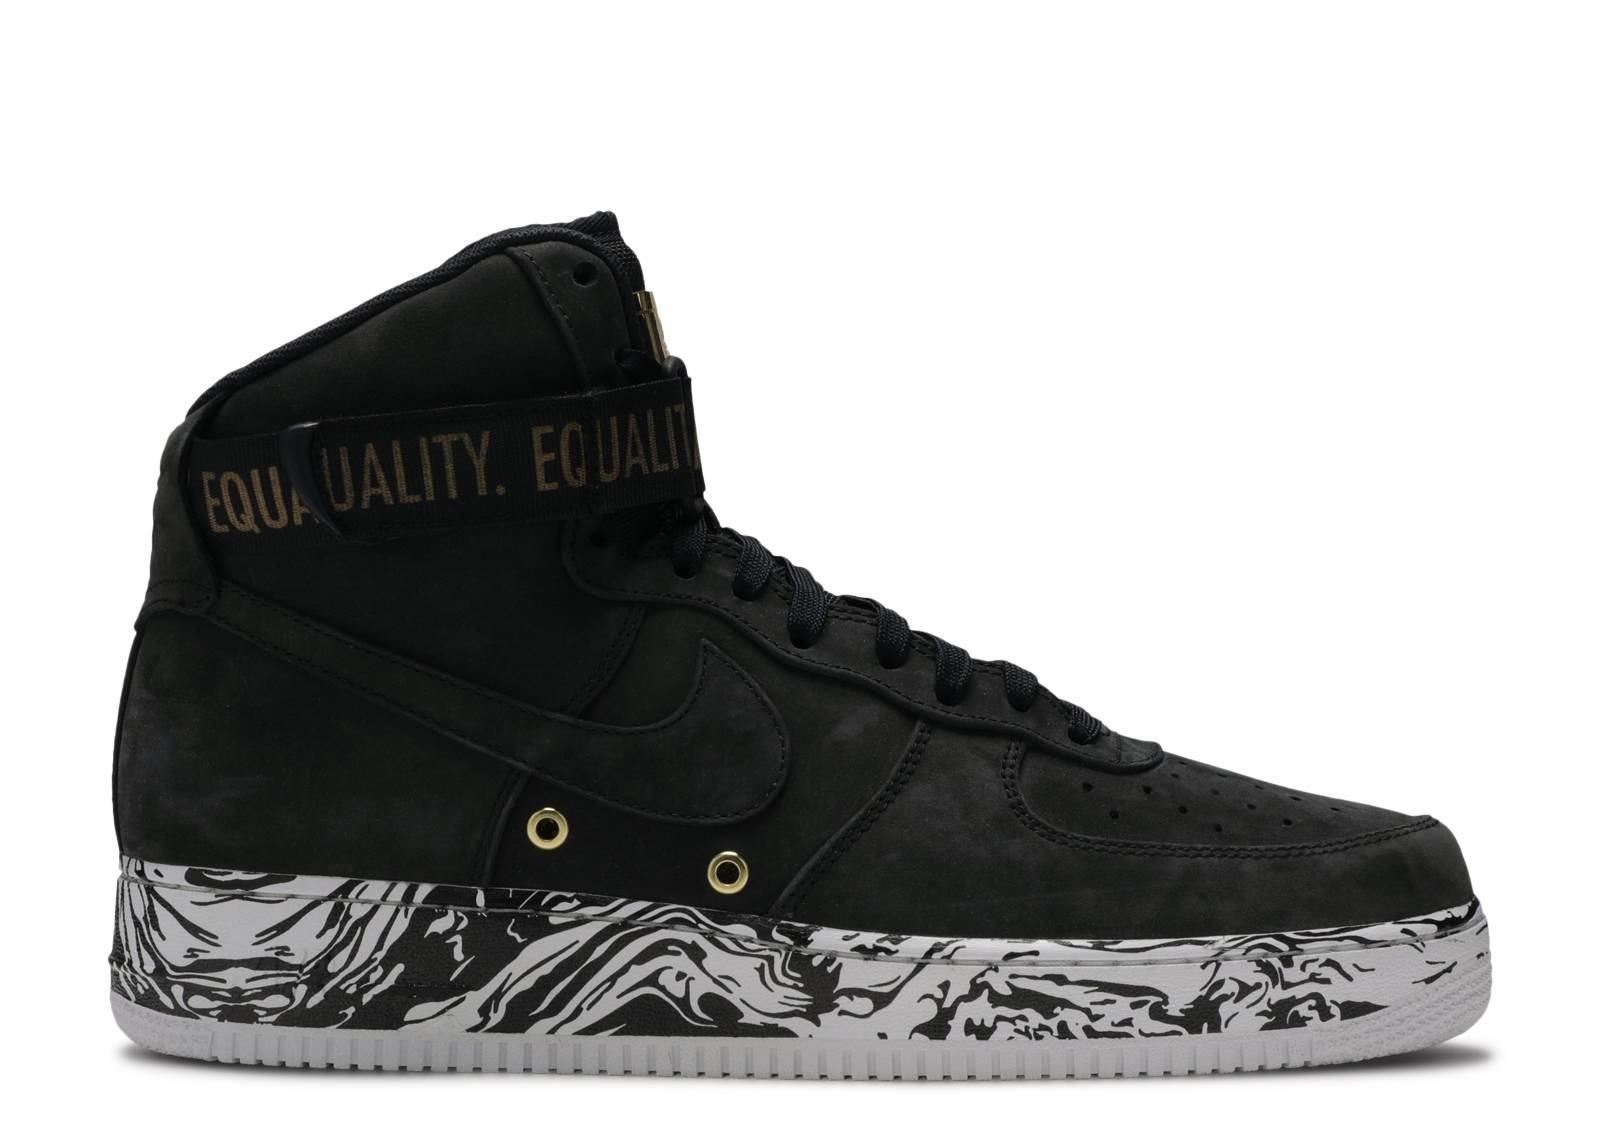 competitive price 658be e41b4 nike. air force 1 hi bhm qs